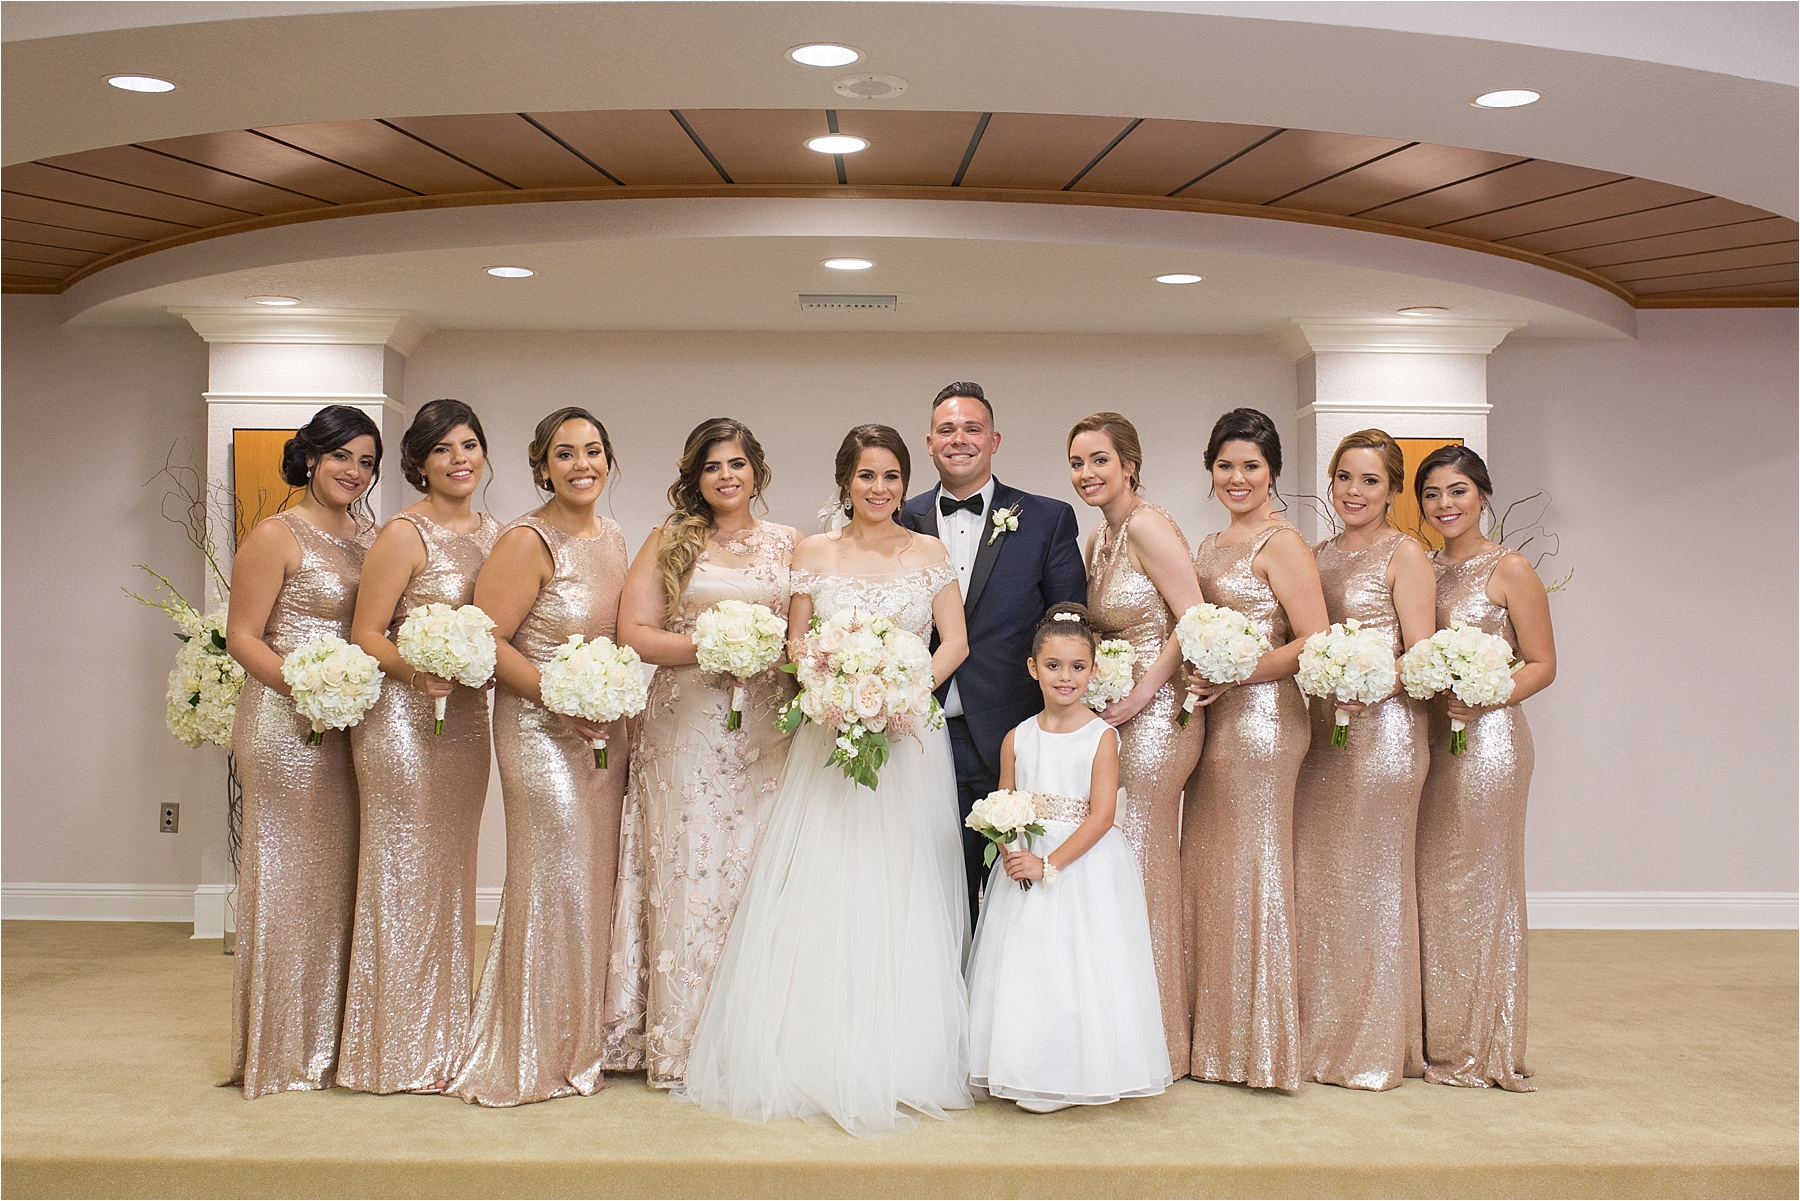 seaspice miami wedding